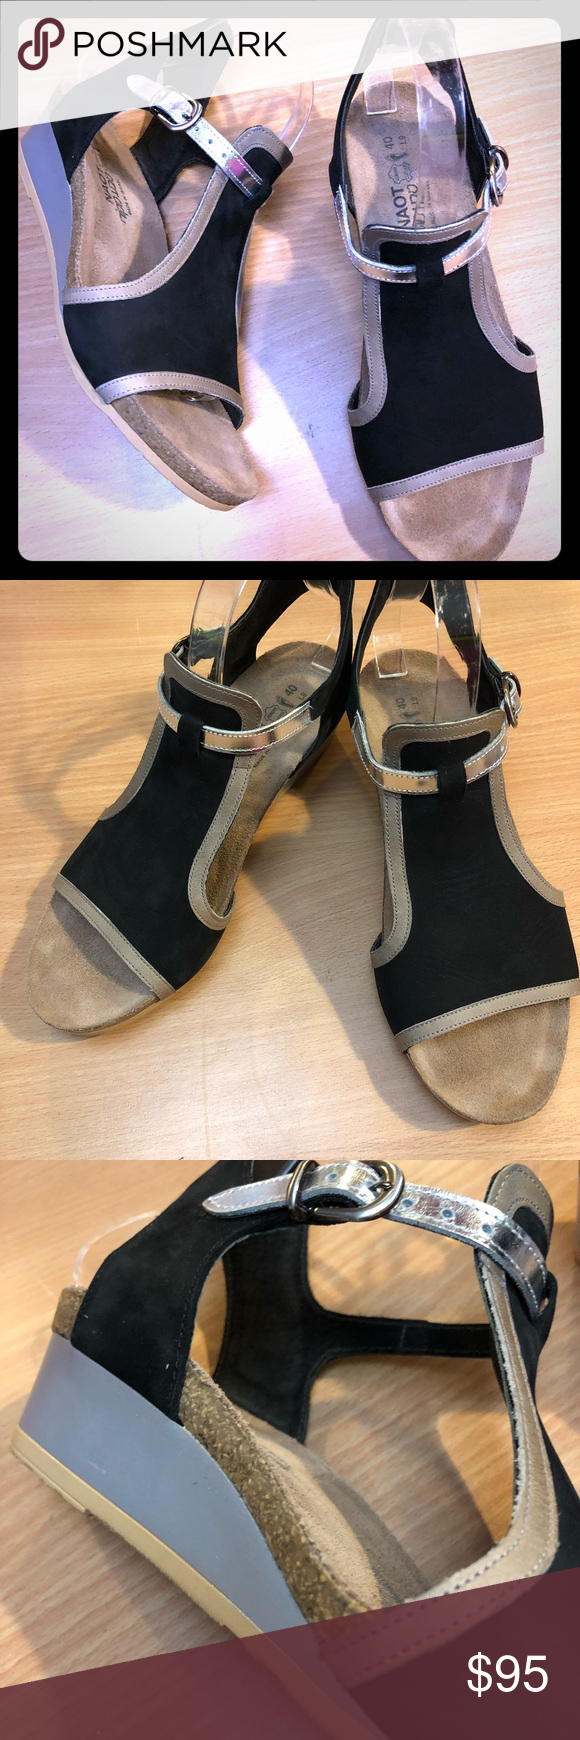 61d8d4a0b6a0 NAOT Fiona wedge slingback open toe sandal! The Fiona is the perfect  transitional wedge.